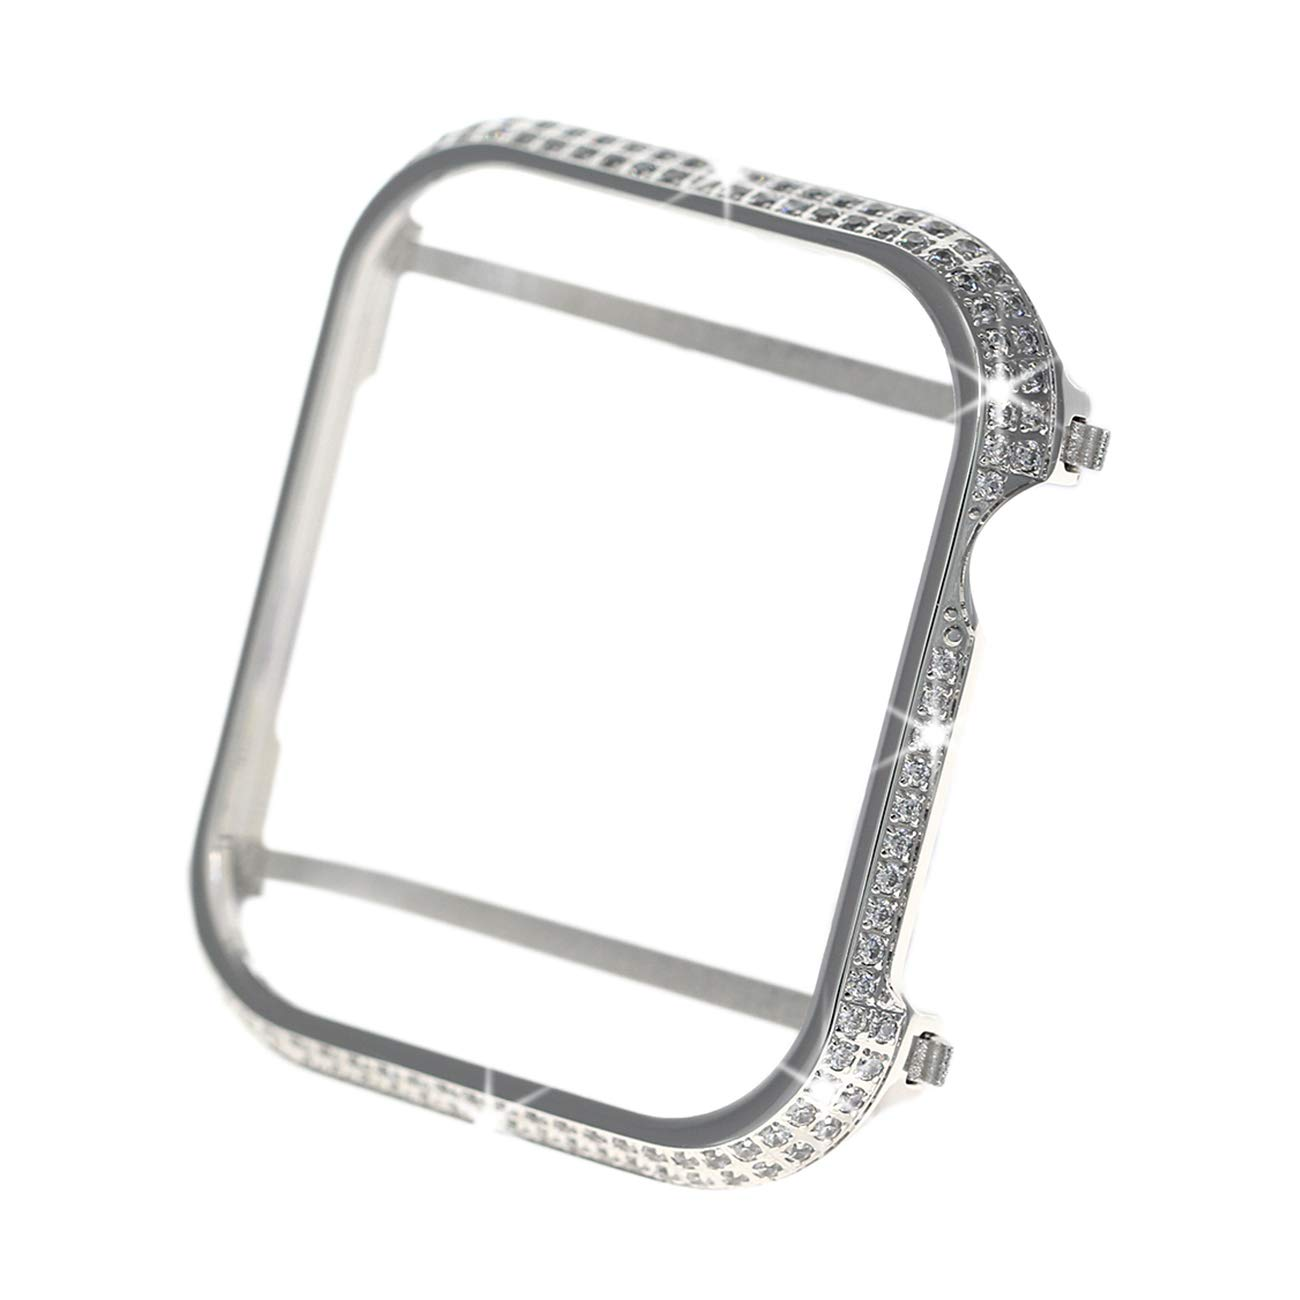 Shiny Diamond Rhinestone Aluminum Metal Watch Bumper Cover Compatible for Apple Watch 40mm/44mm Series 4(Best 3D Bling Gift for Your iWatch (Silver- 2, 44mm)